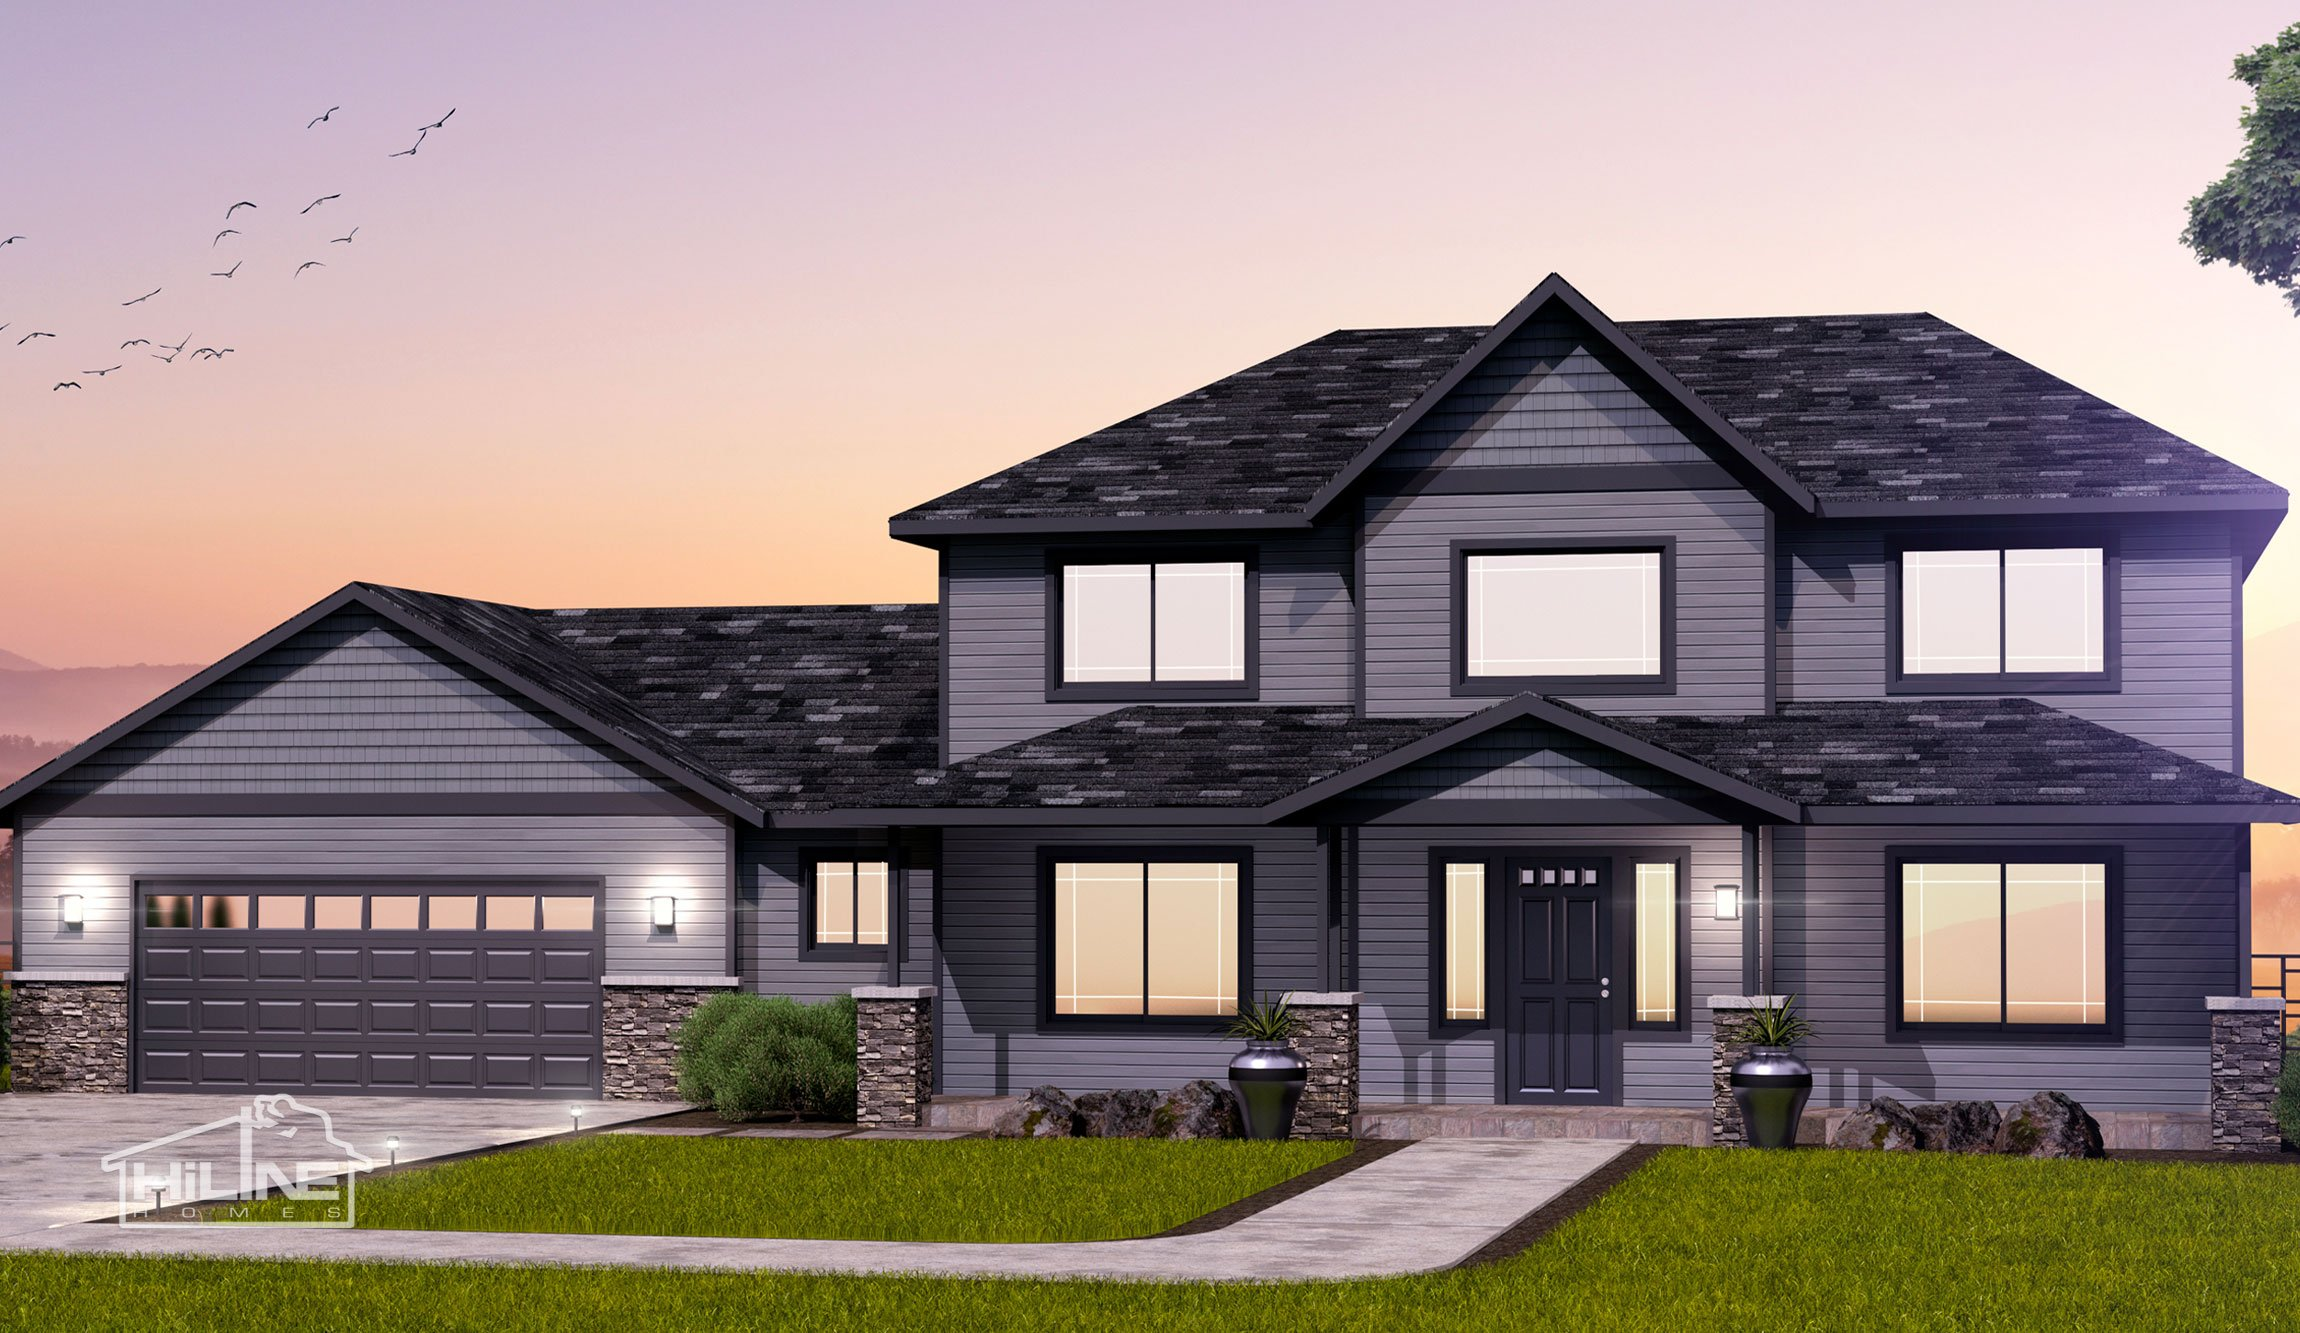 Home Plan 2686 Feature Image